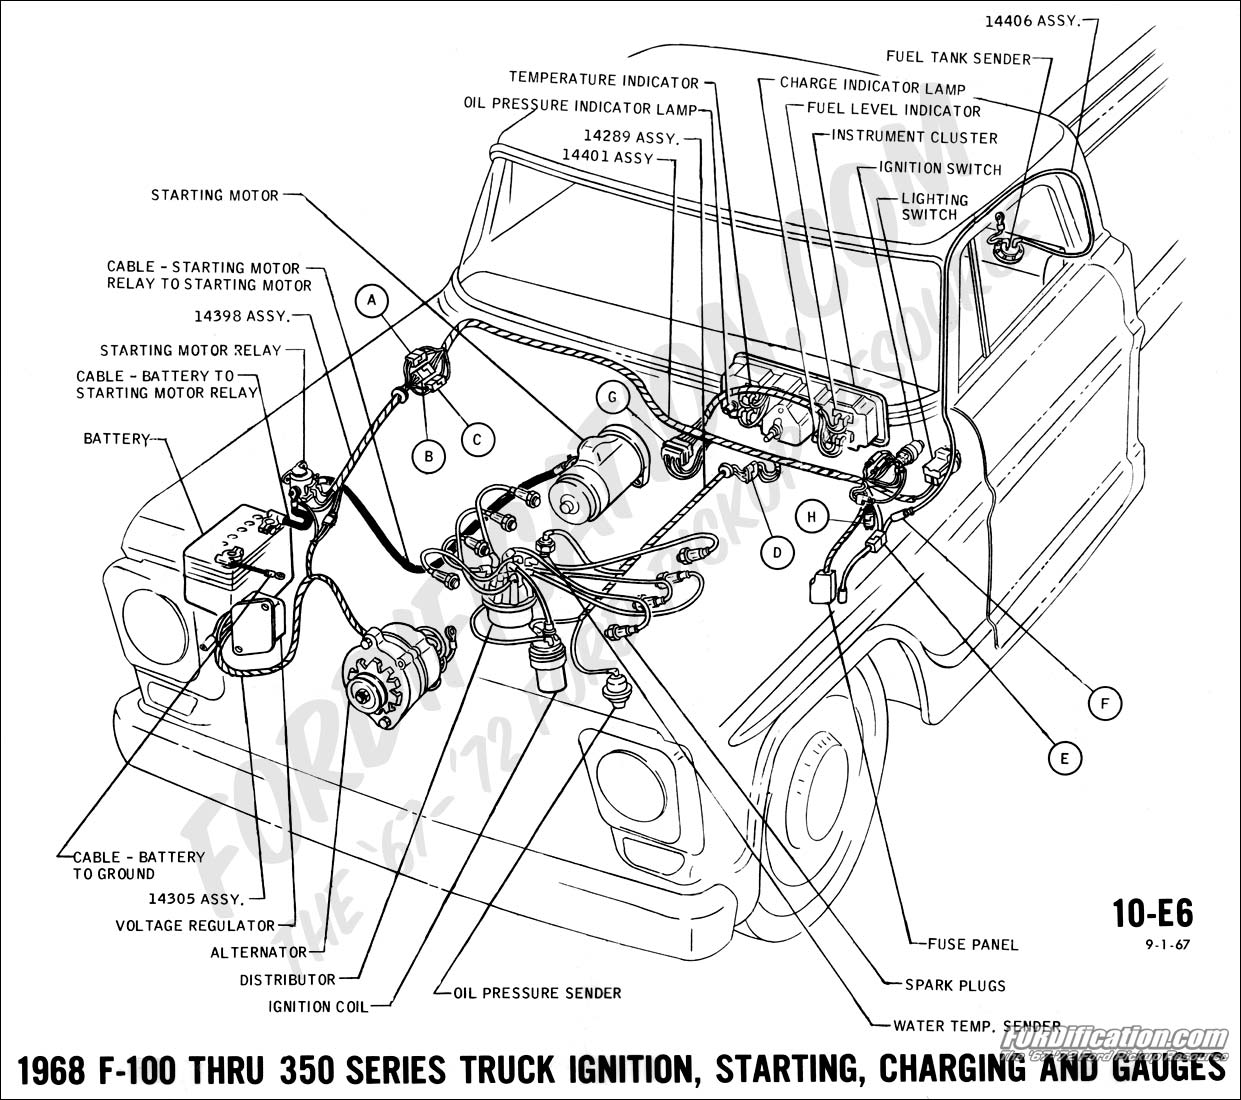 2002 Chevy Luv Fuse Box Wiring Diagram Detailed Gm Connectors In Diagrams 2004 Classic 1968 Truck